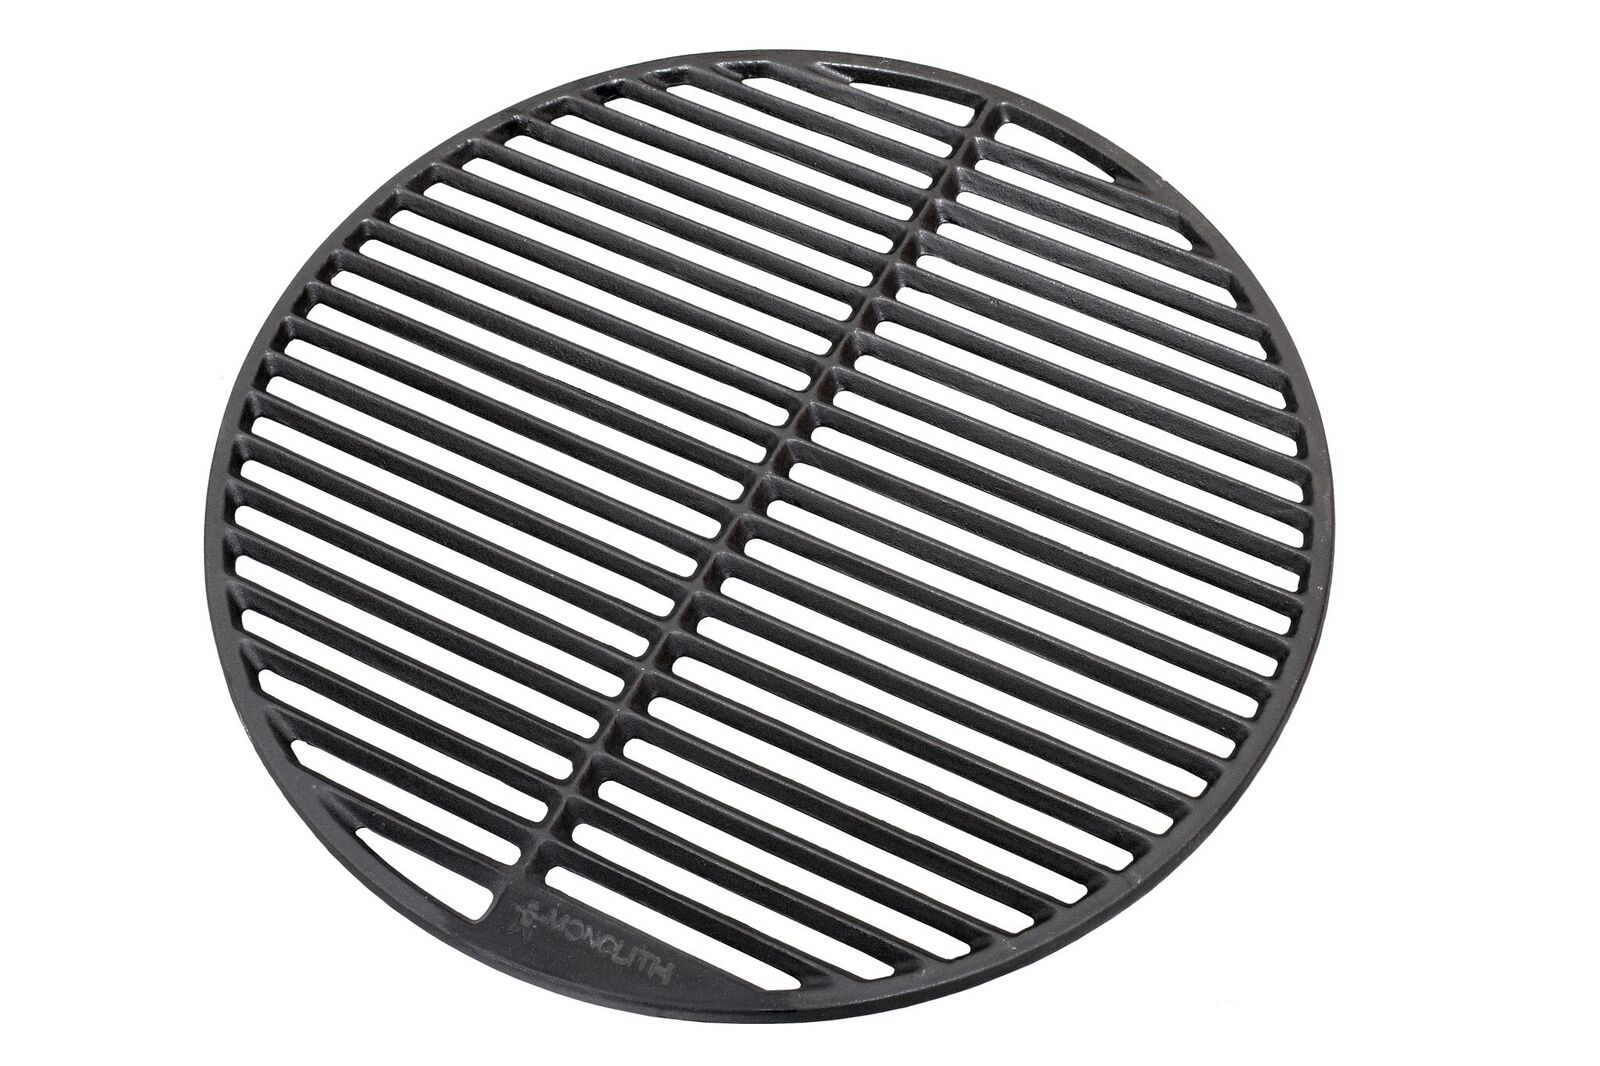 Kamado Cast Iron Grate Bargain